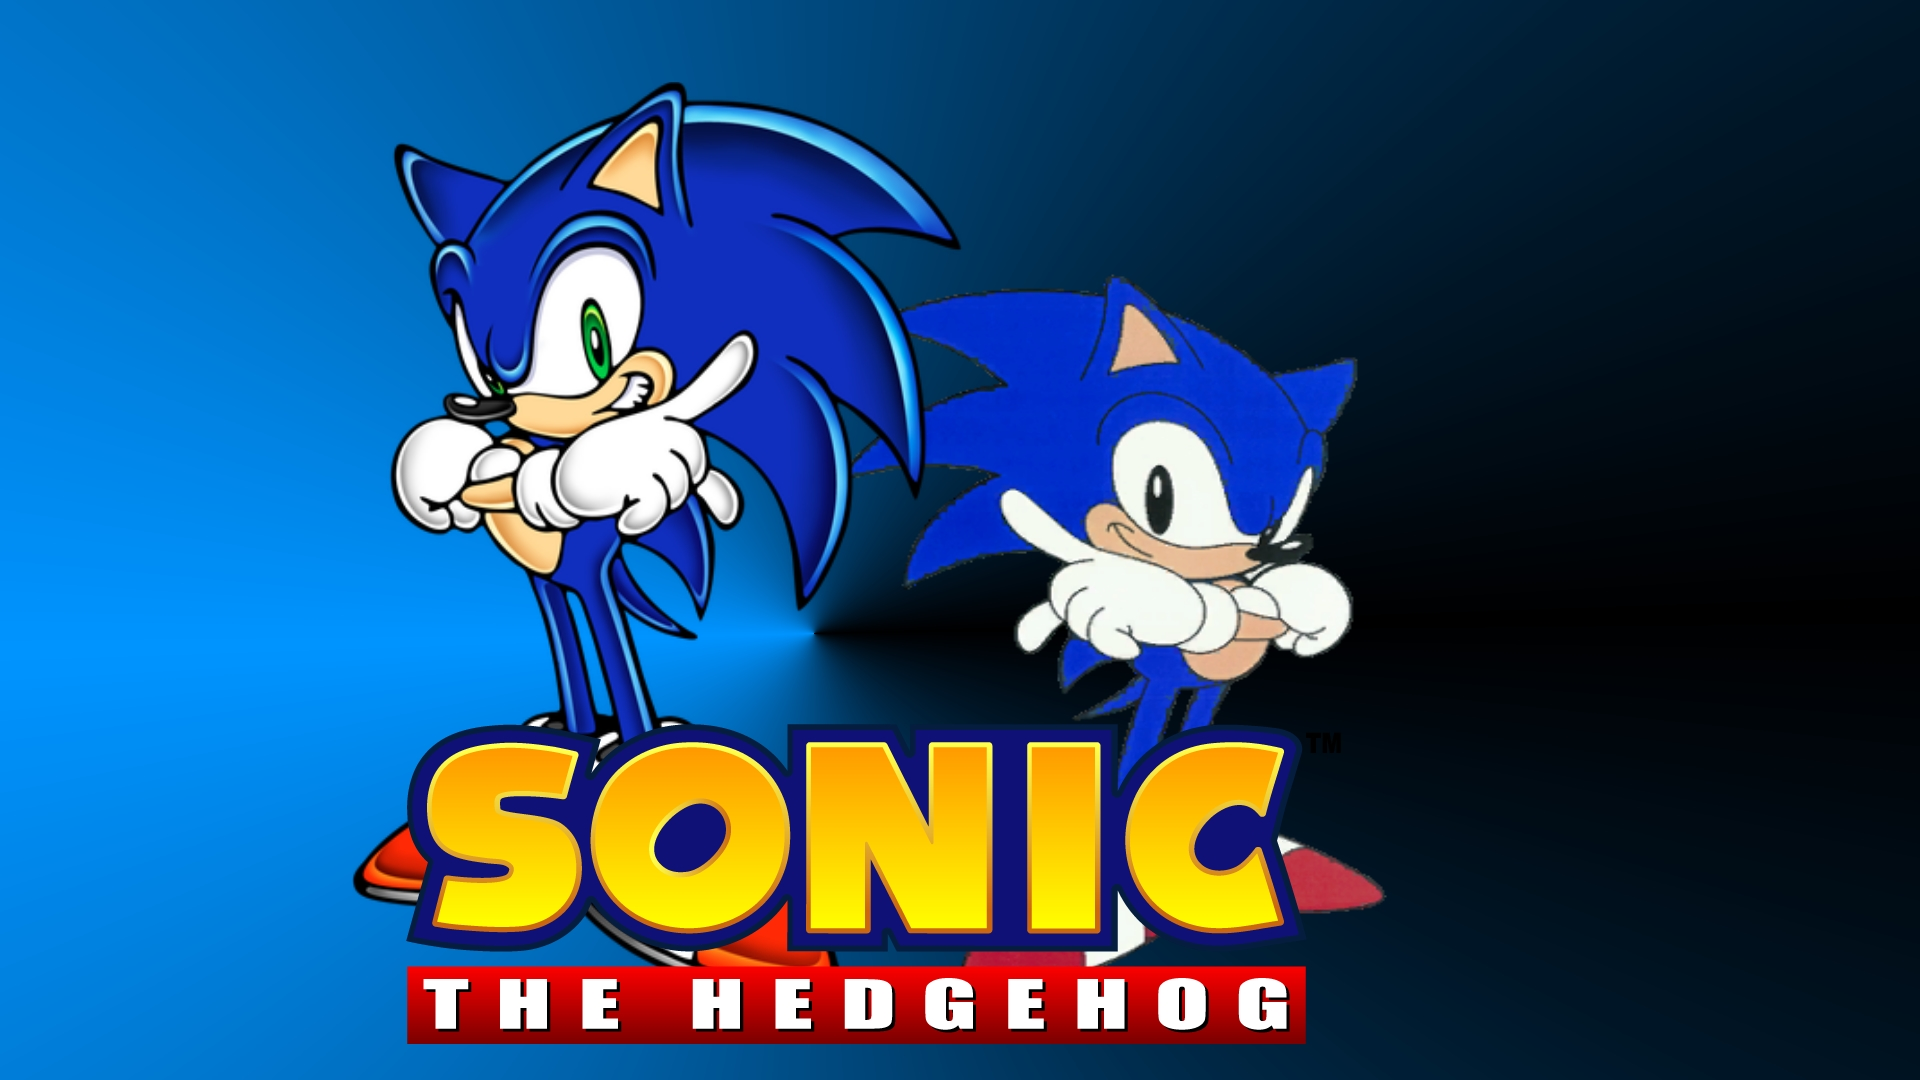 sonic-the-hedgehog-wallpapers